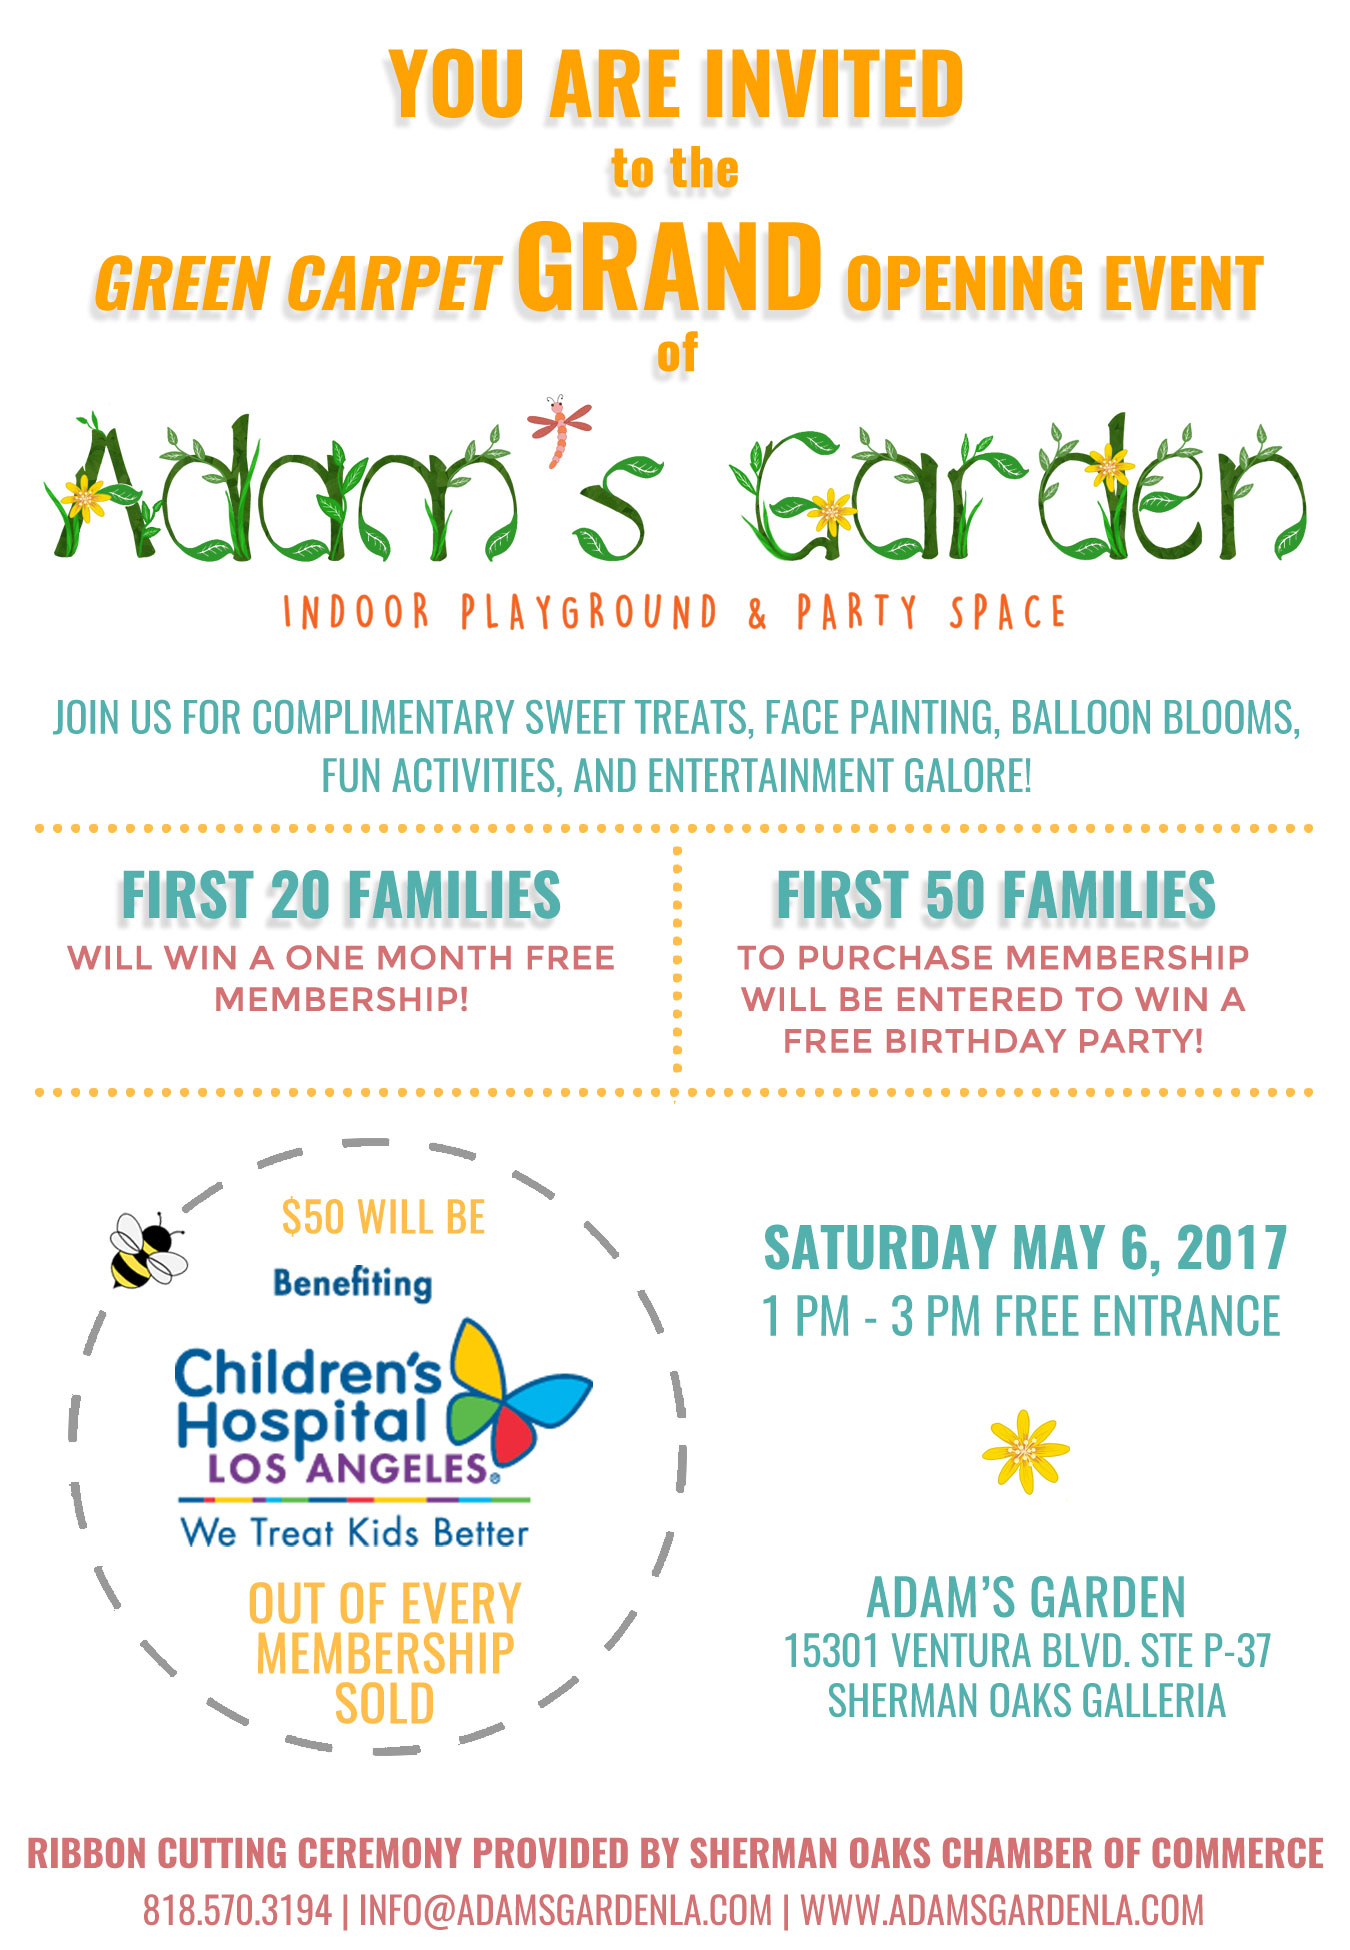 adam's garden launches first location at sherman oaks galleria